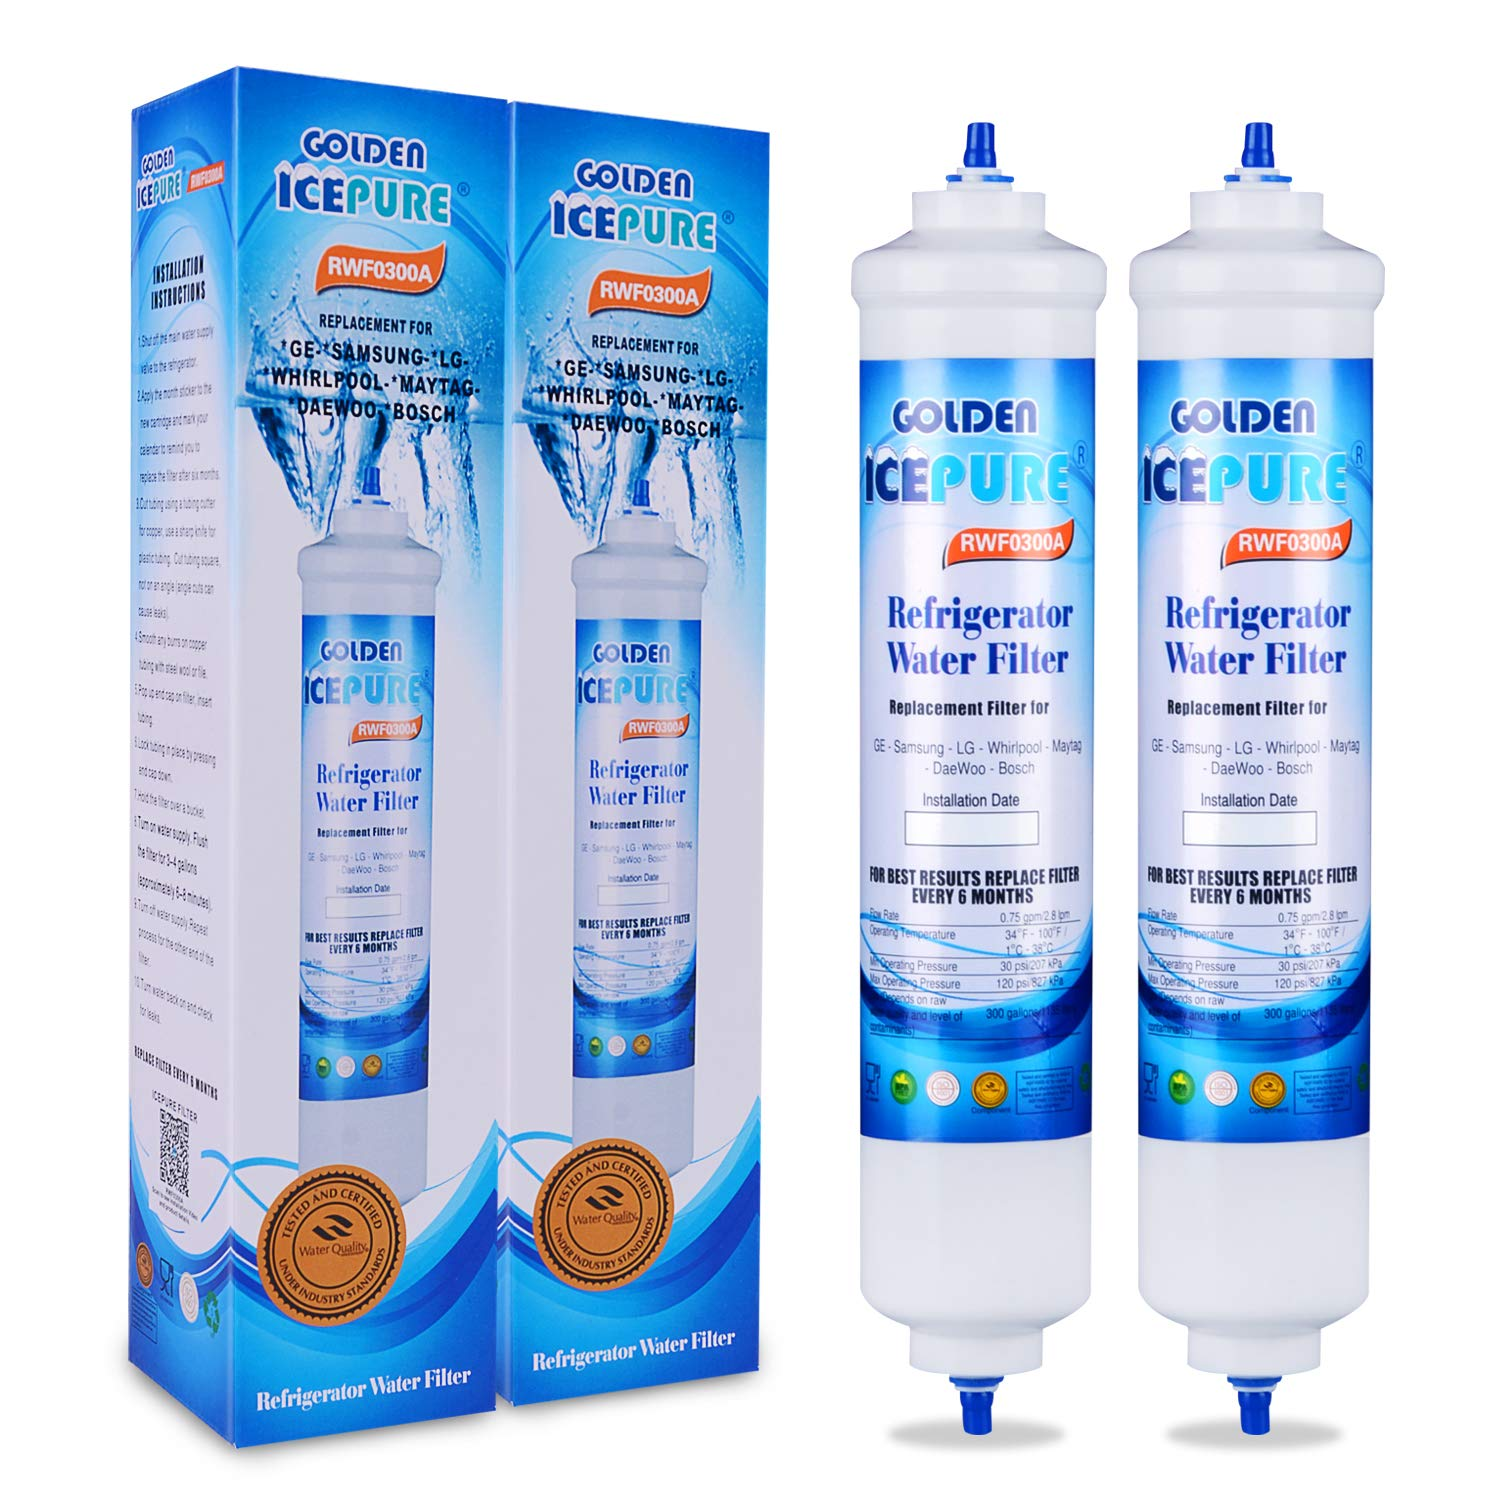 2 Pack Golden Icepure Refrigerator Water Filter Replacement for DA29-10105J, DA29-10105J HAFEX/EXP